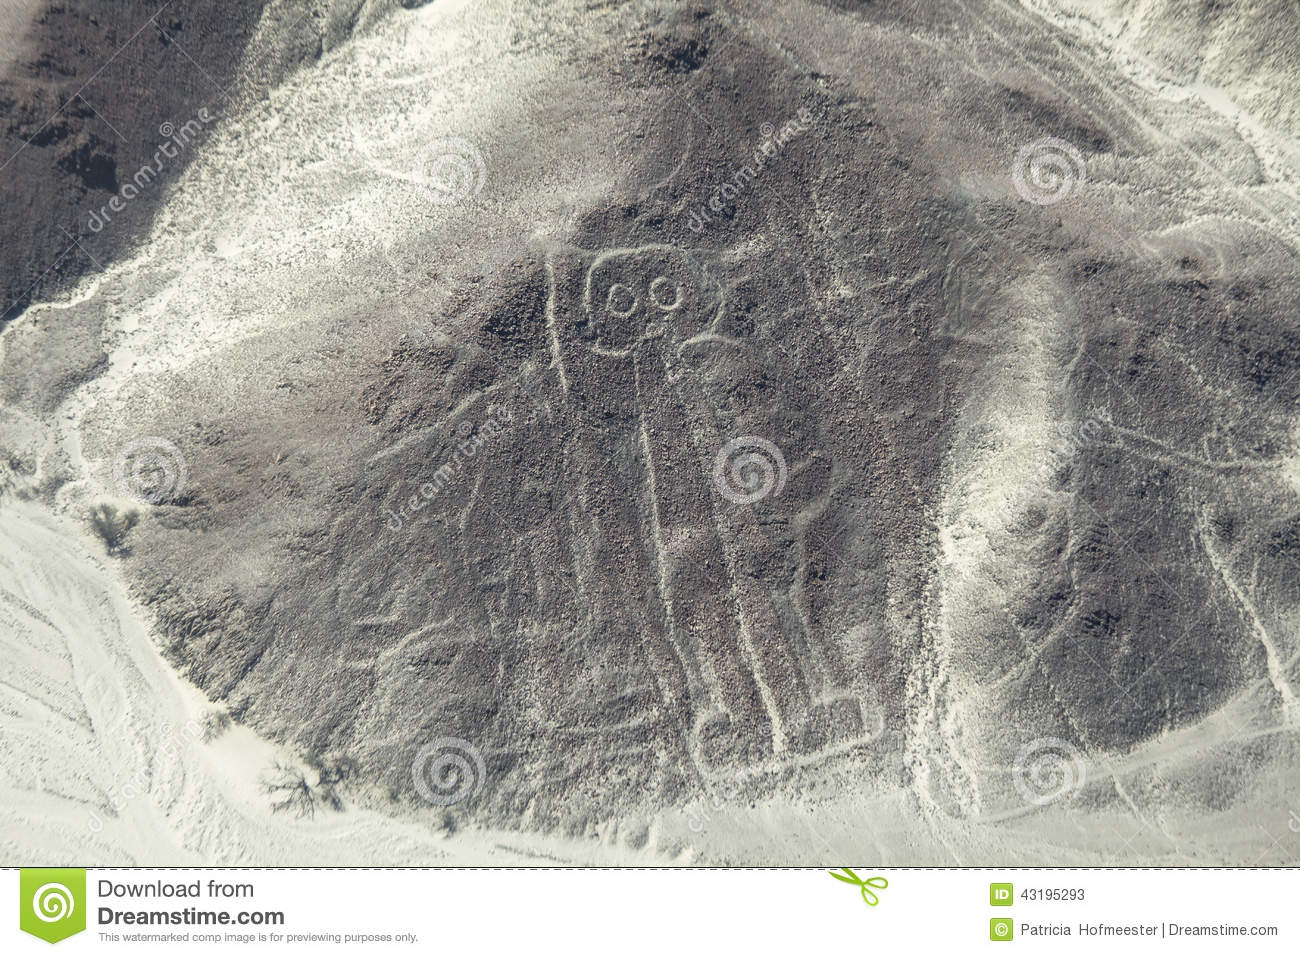 Astronaut Image At The Nazca Lines In Peru Stock Photo ...